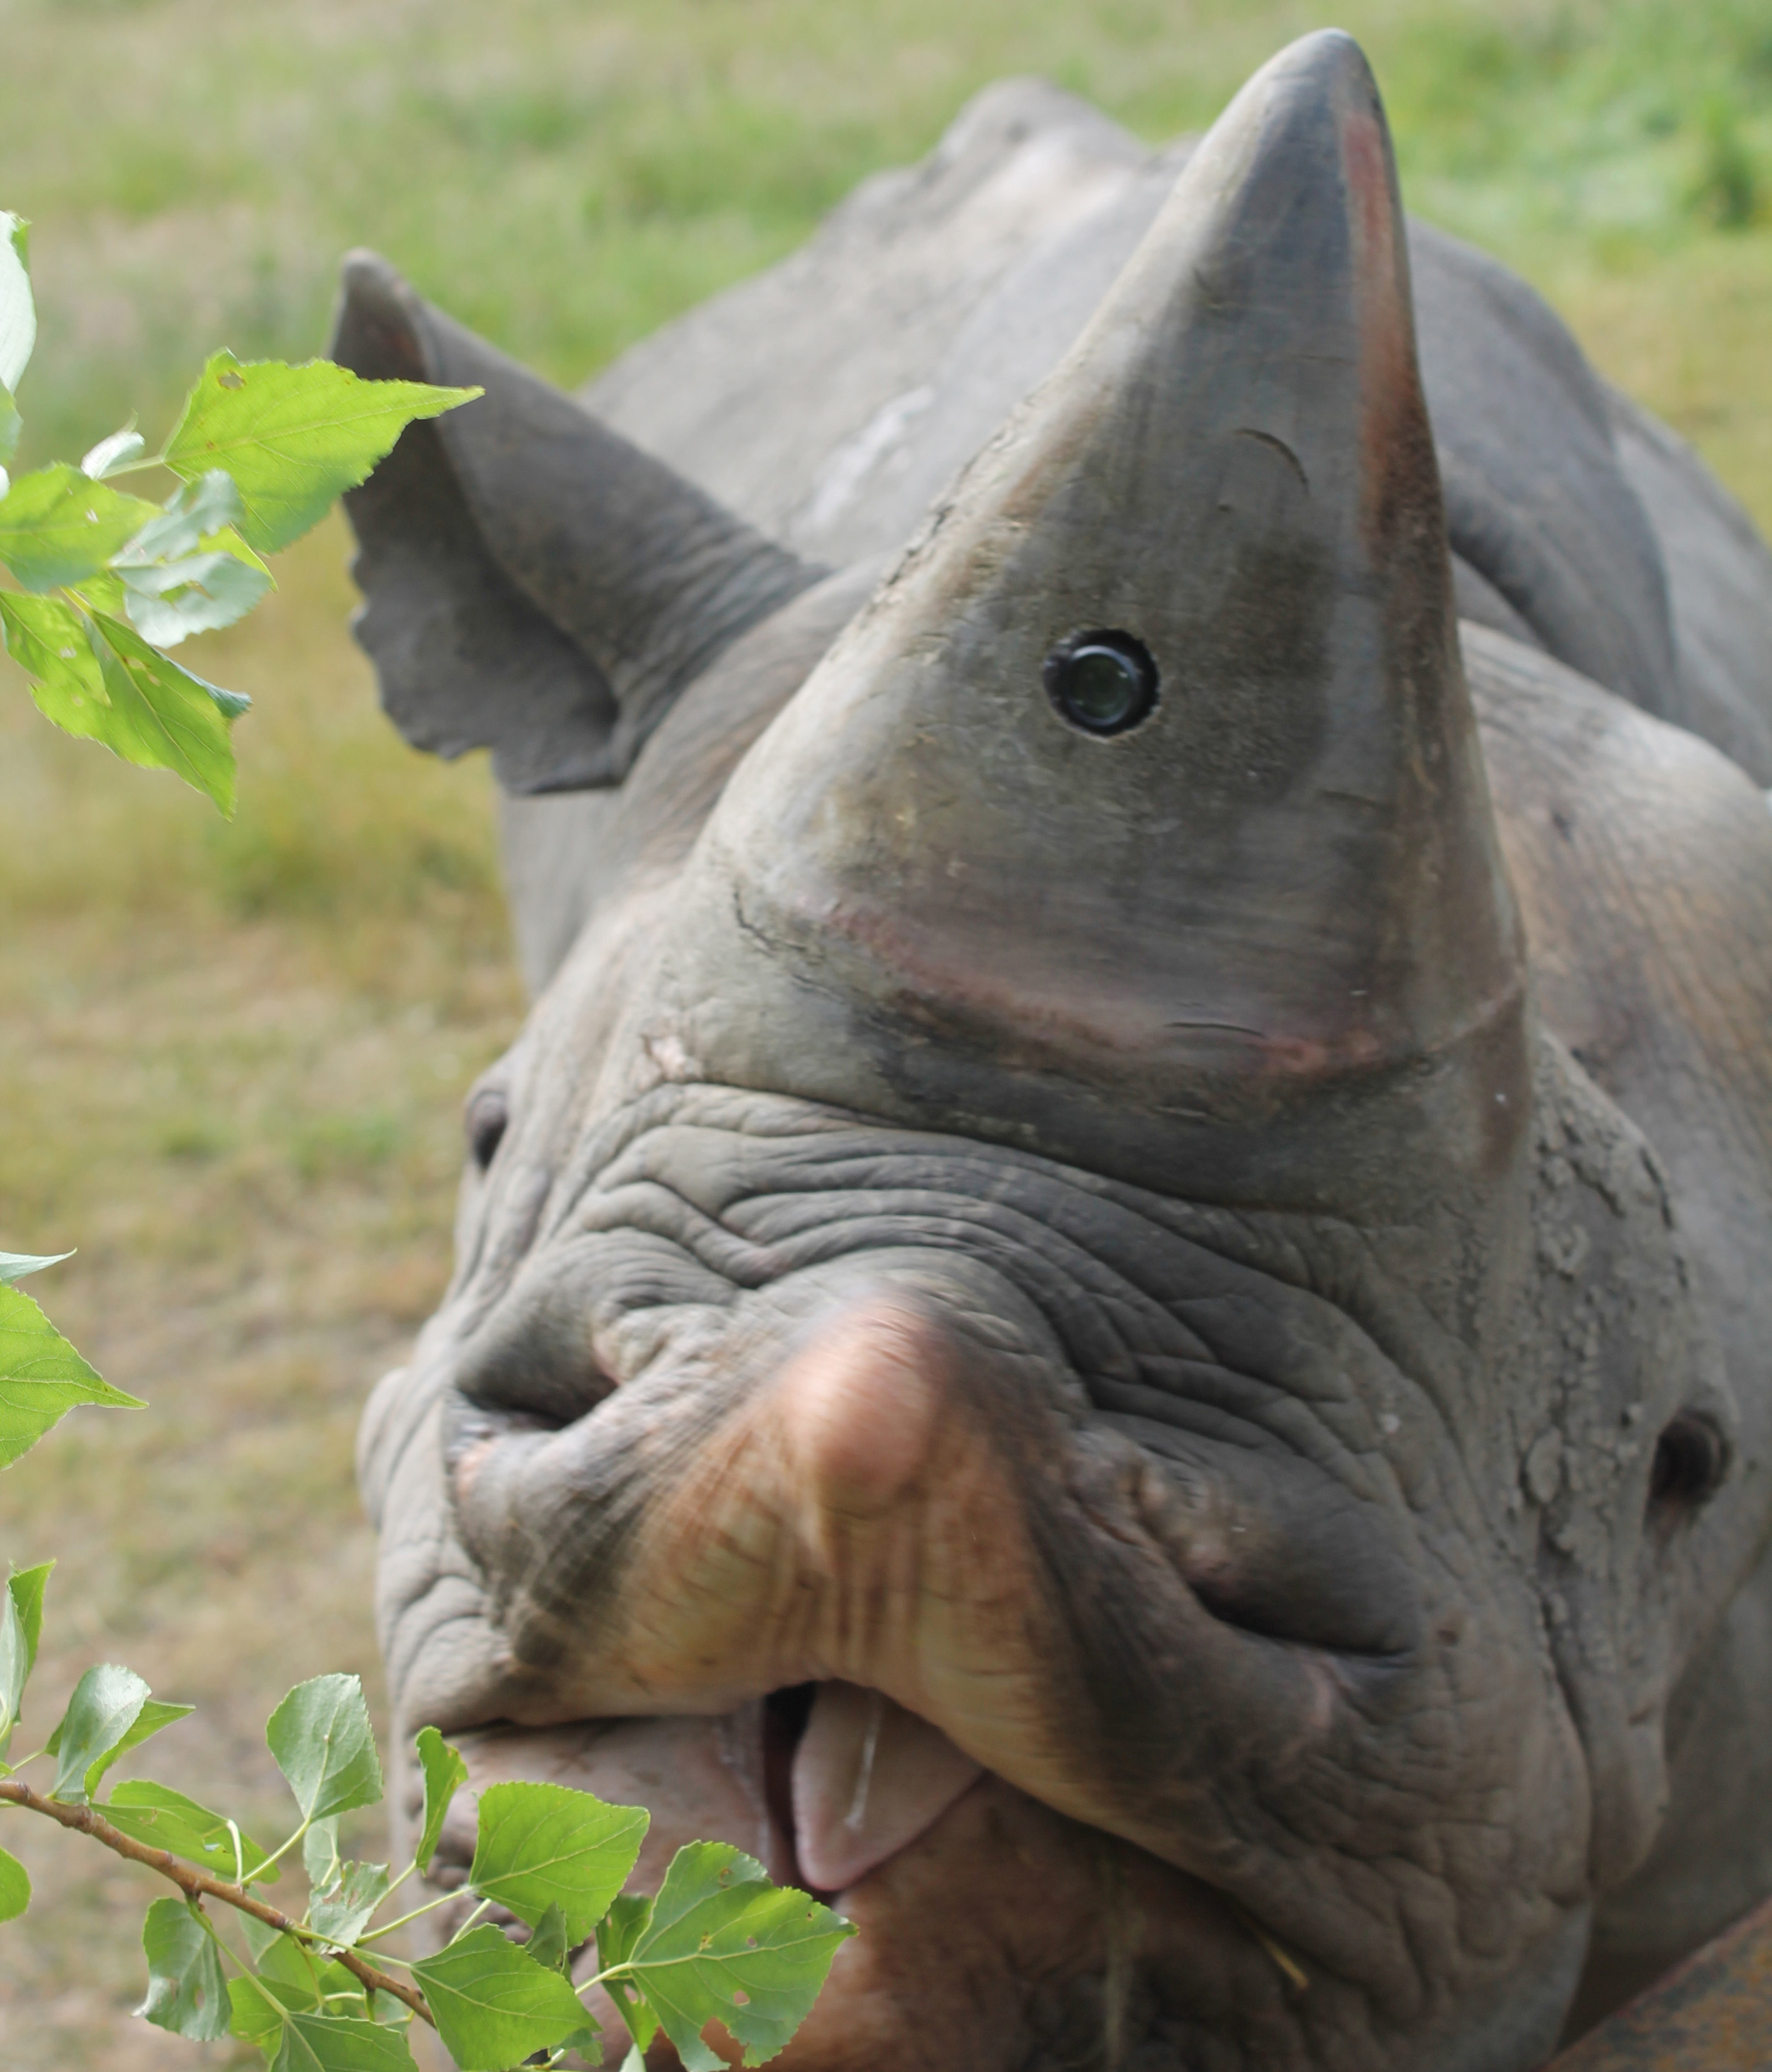 A black rhino with a tiny camera embedded in its horn leans in for a snack. PROTECT